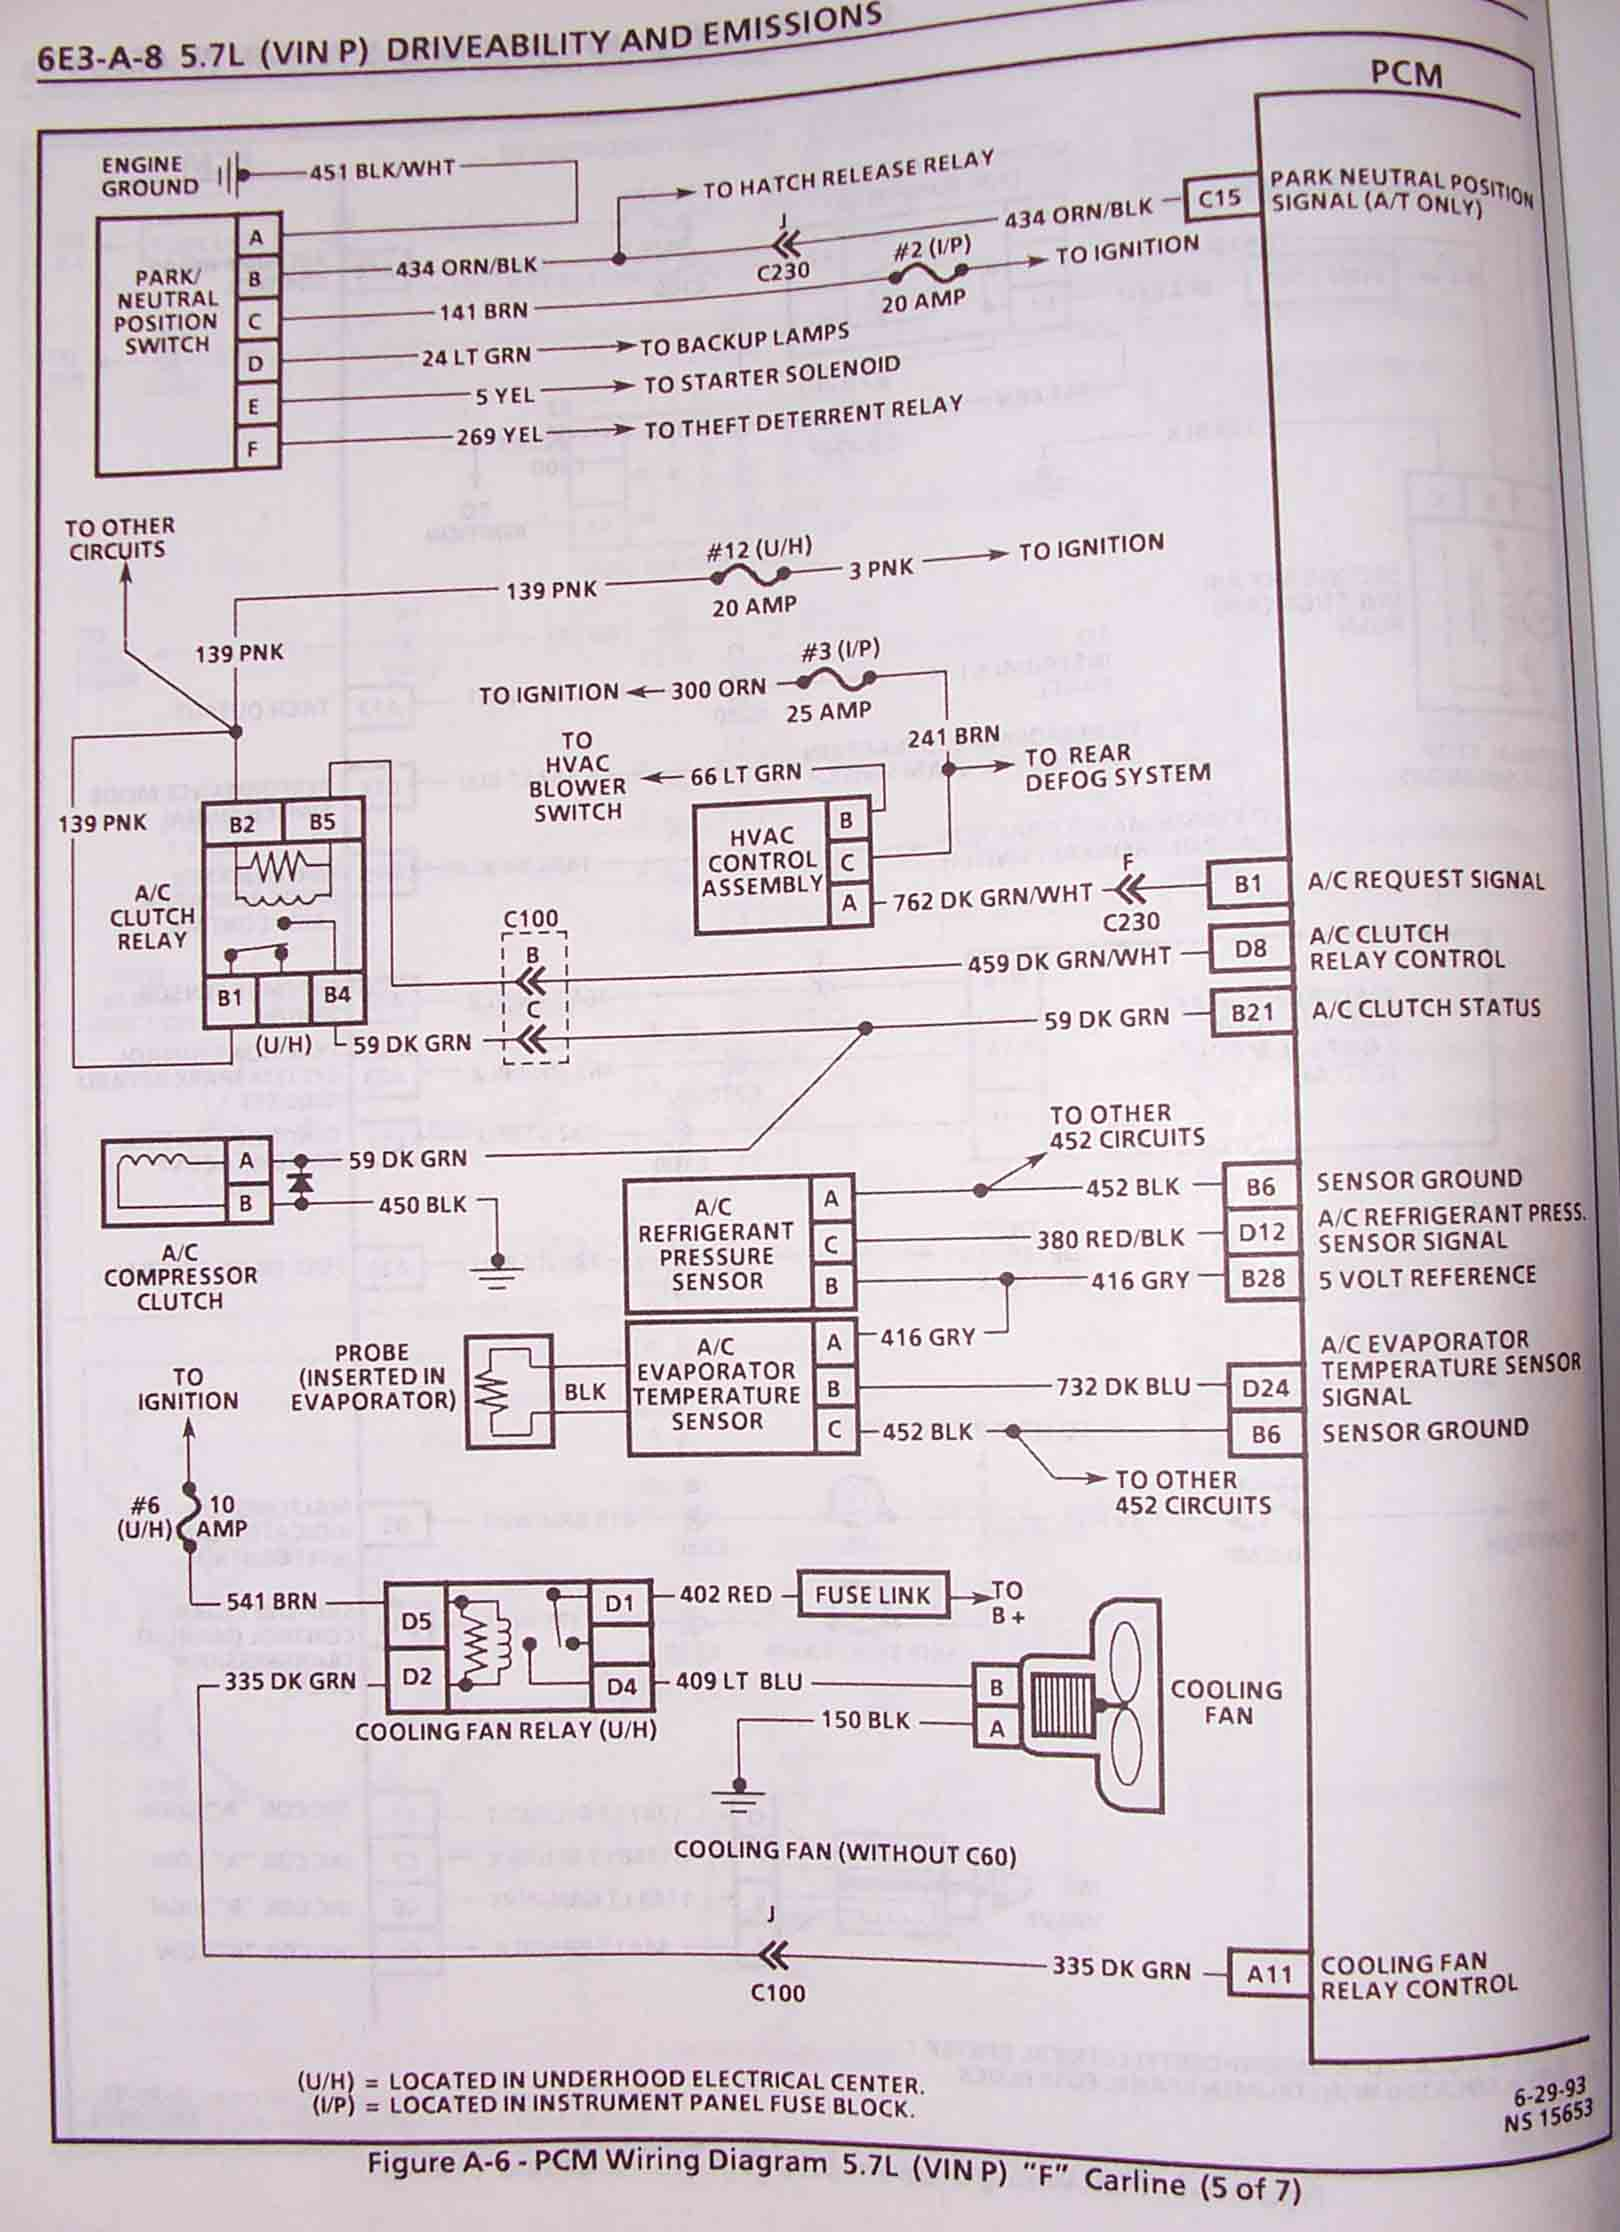 94 Camaro Ignition Wire Diagram Just Another Wiring Blog 1967 Distributor 1995 F Body Harness Schematics Rh Lt1swap Com Switch